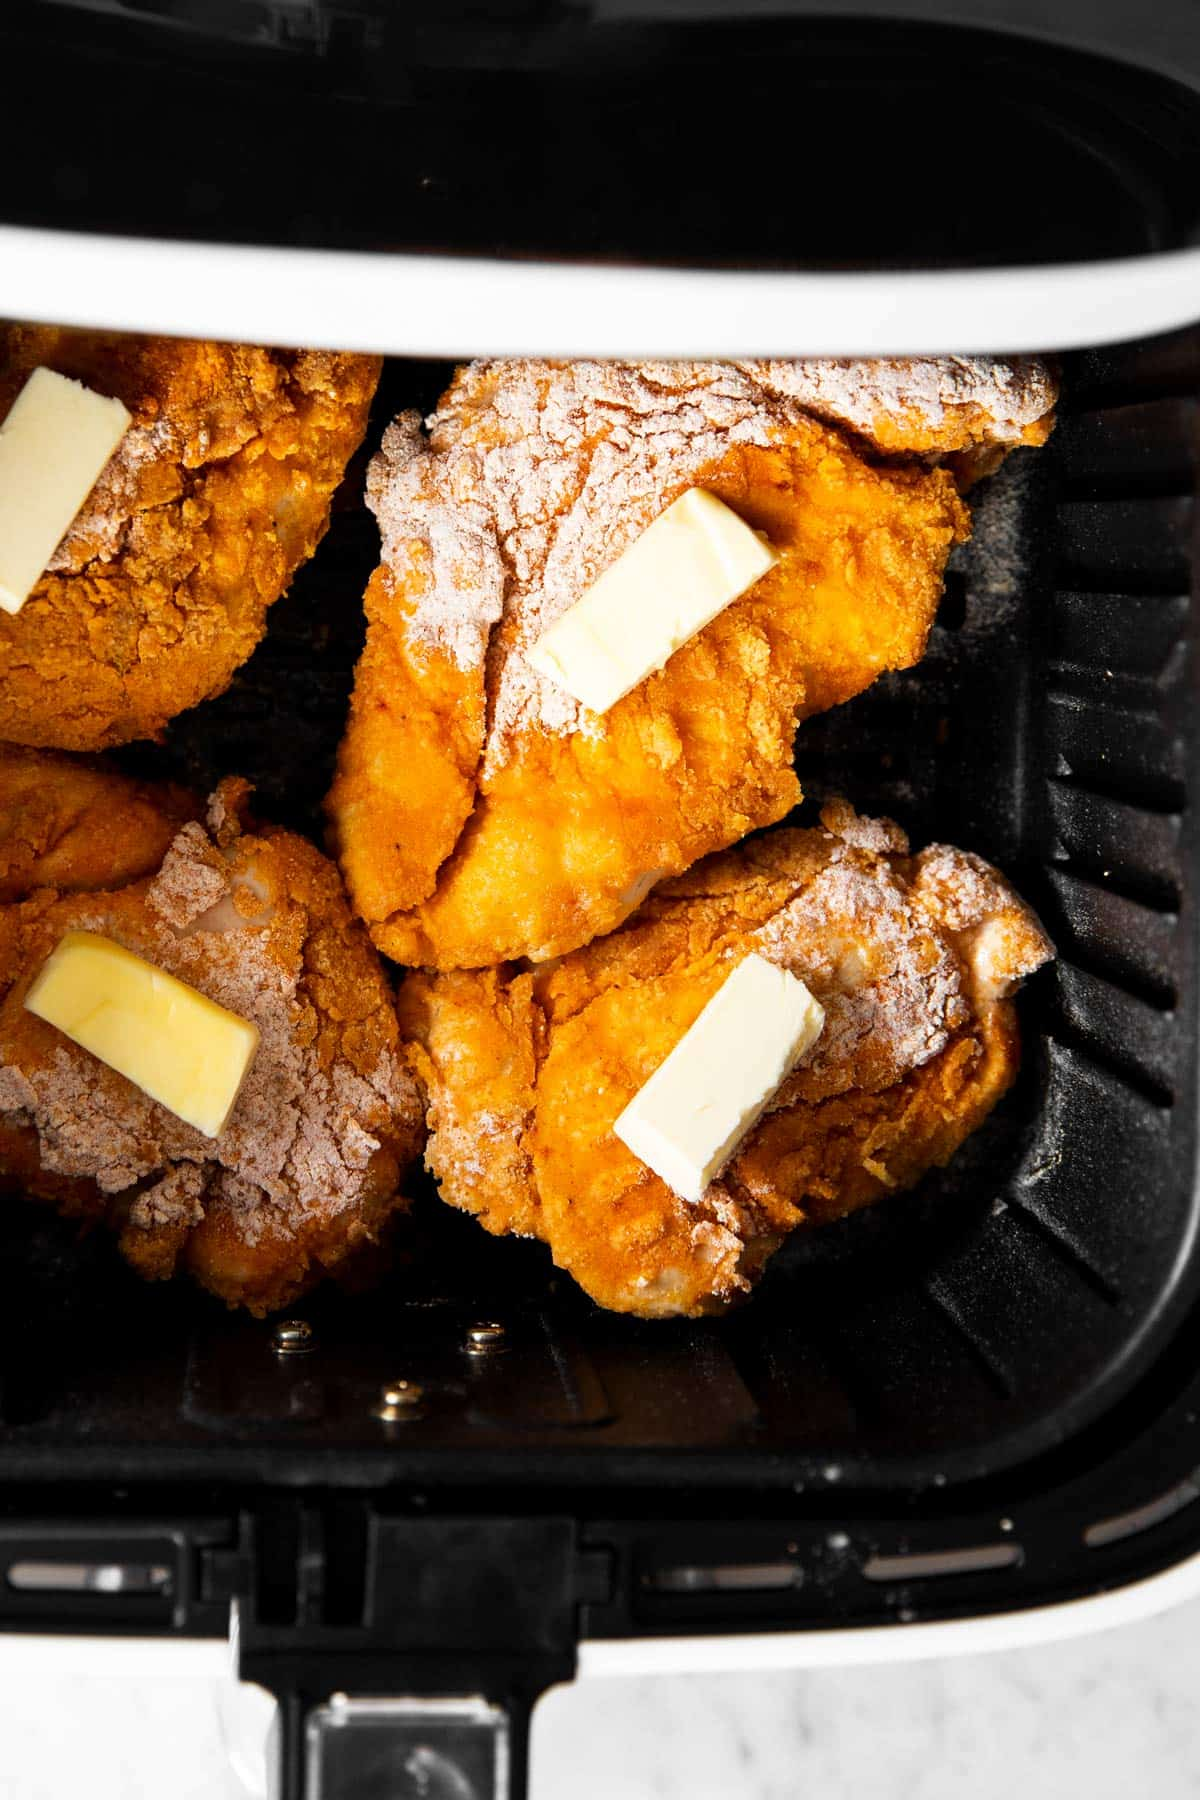 half cooked fried chicken in air fryer basket topped with butter